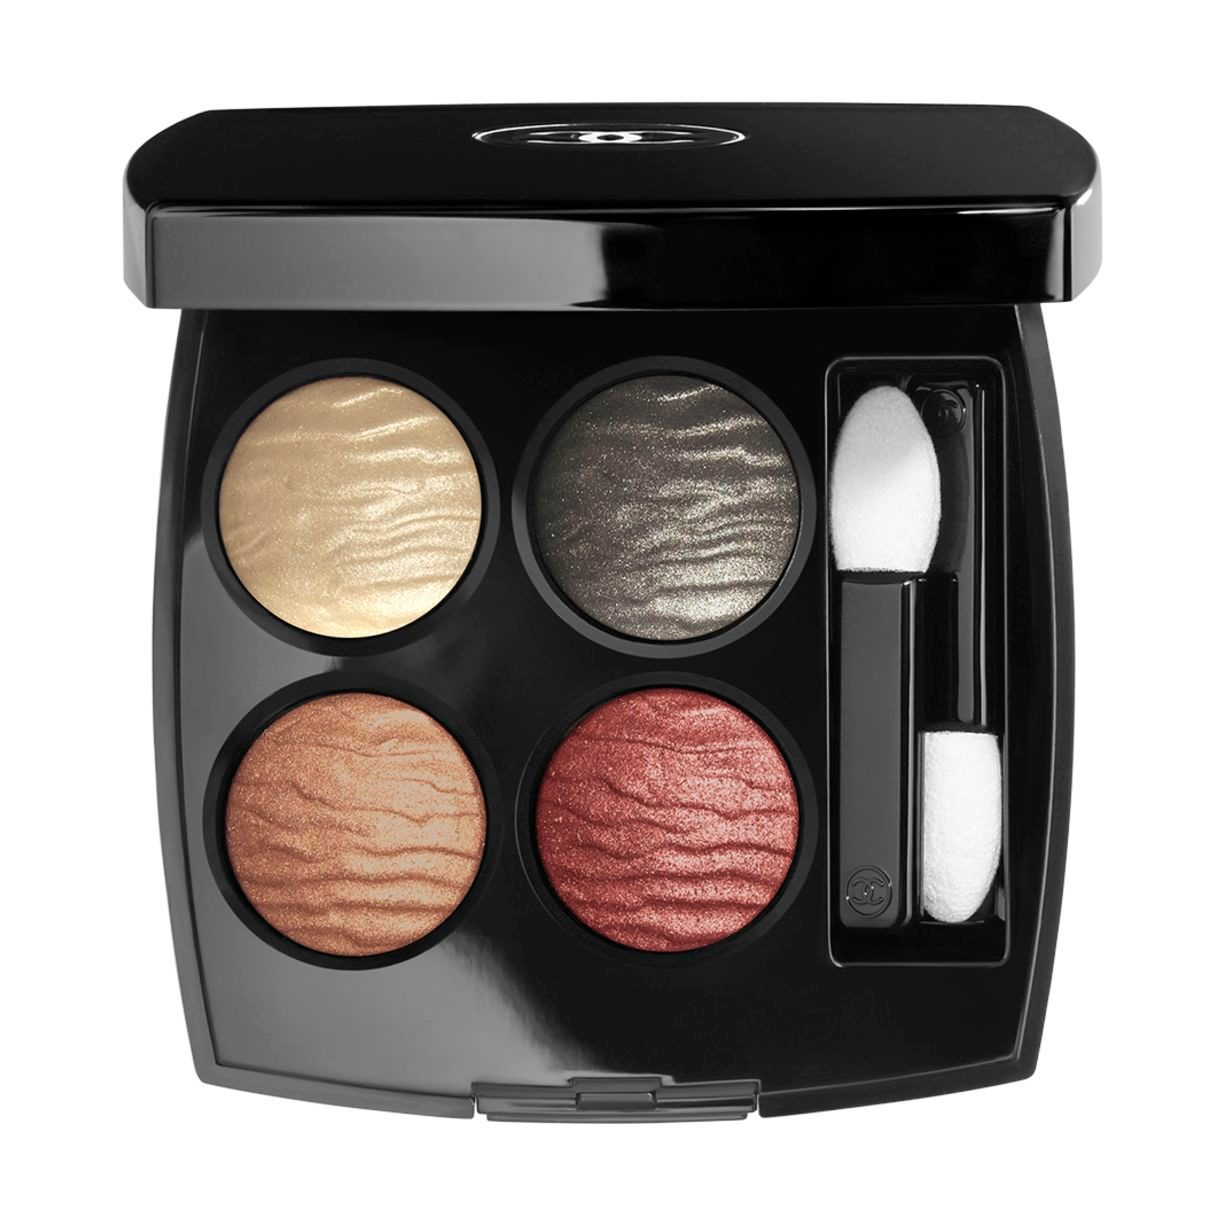 ÉCLAT ÉNIGMATIQUE Exclusive Creation. Limited edition. QUADRA EYESHADOW